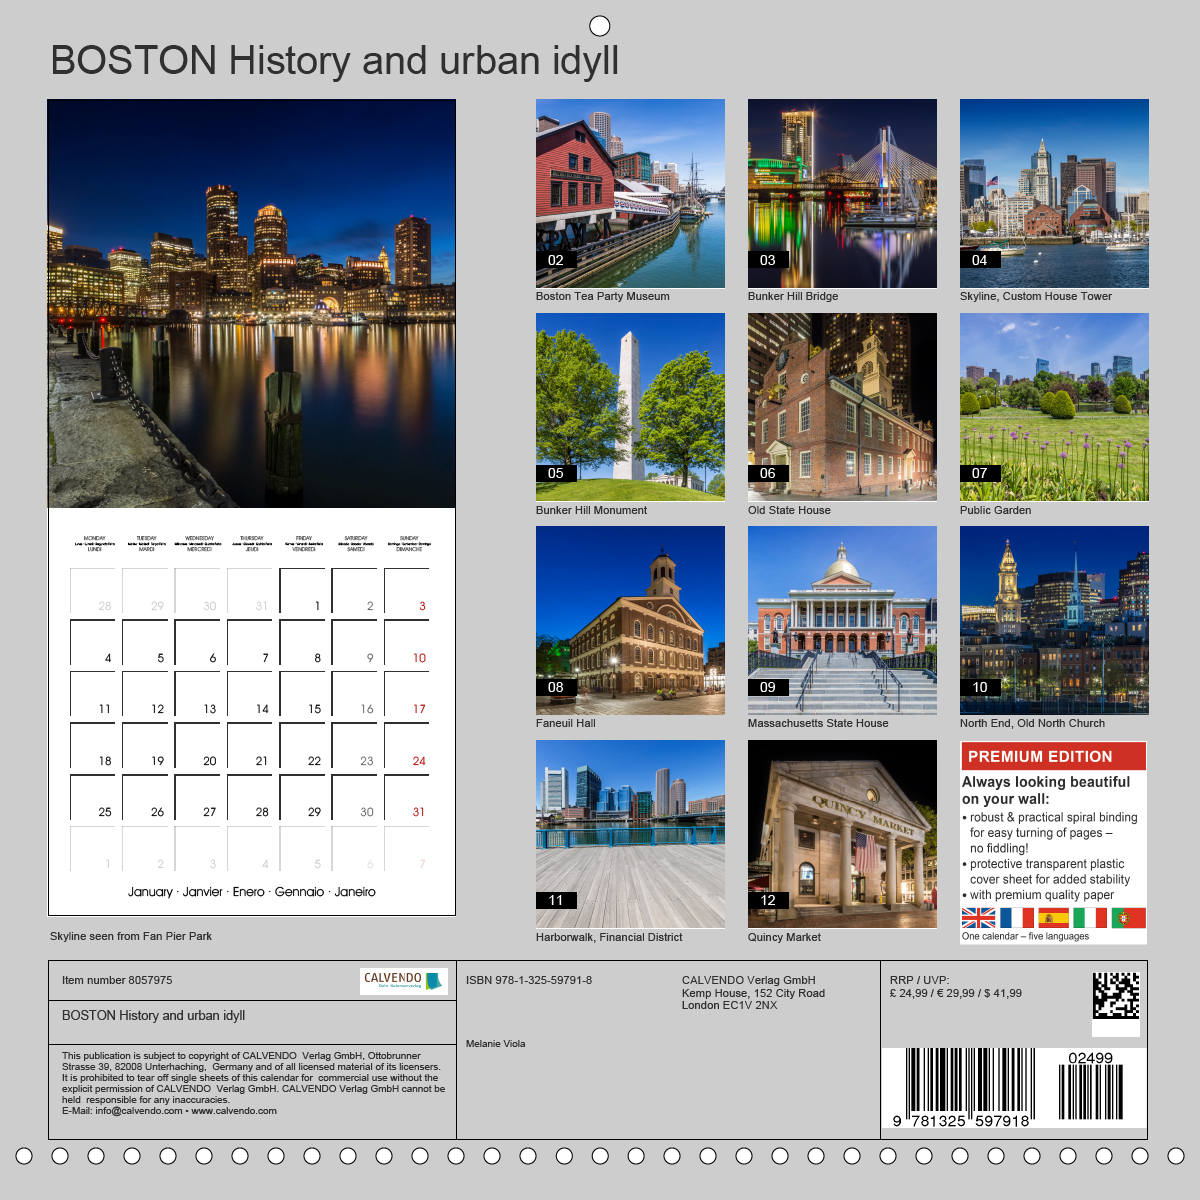 Calendar back - BOSTON History and urban idyll